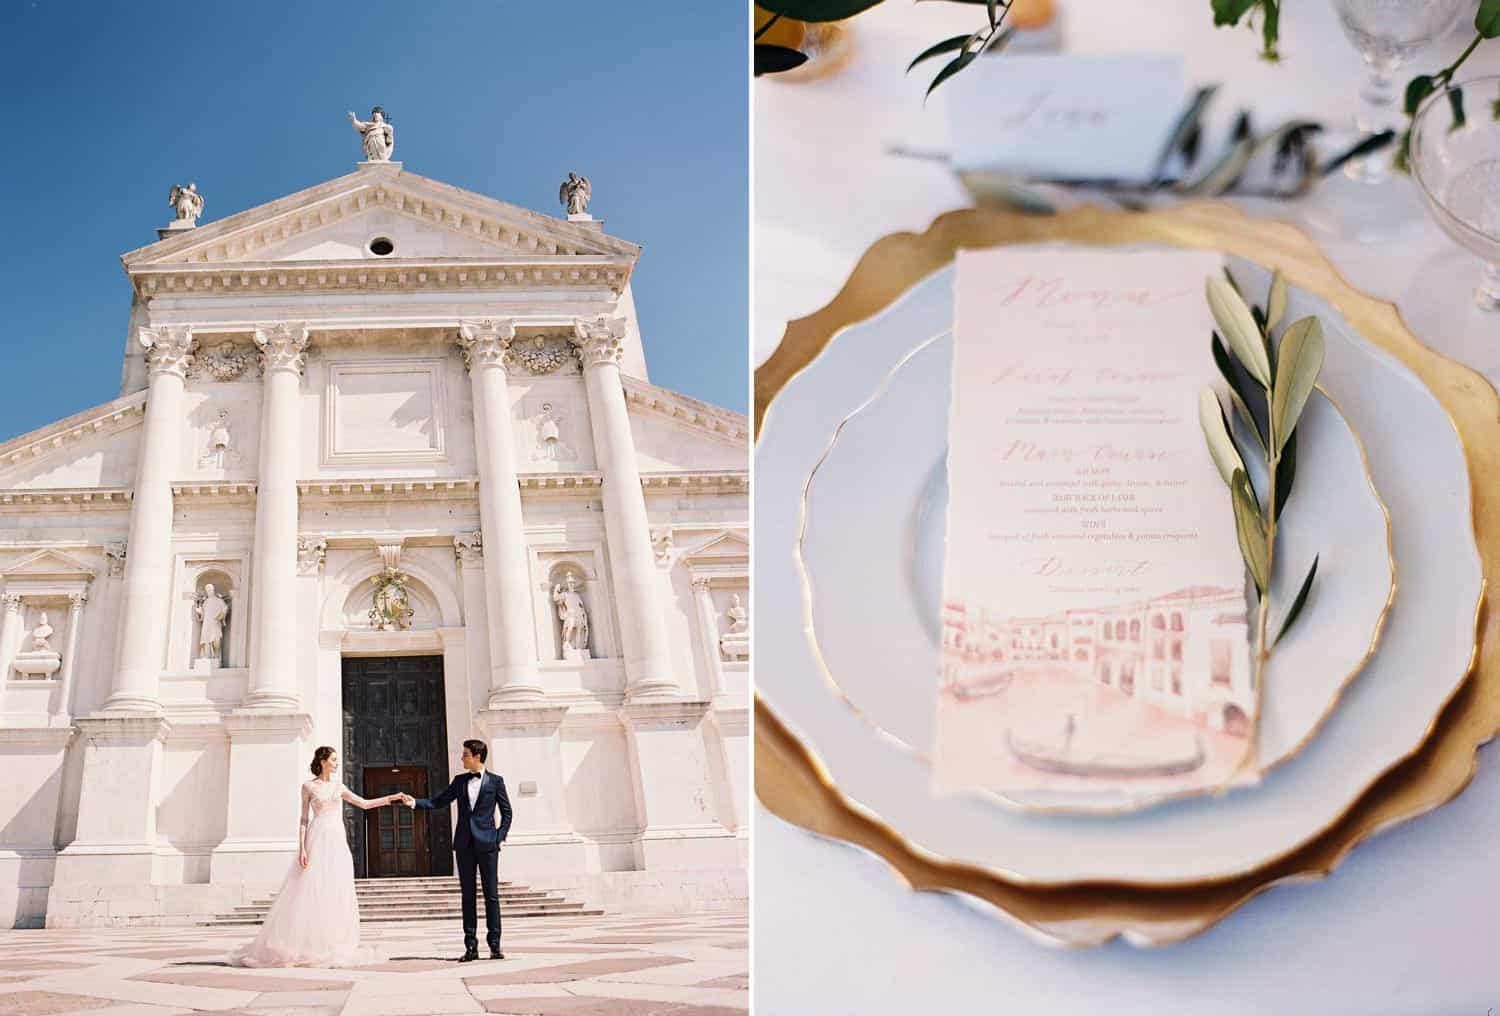 A bride and groom stand before an Italian cathedral under a bright blue sky.